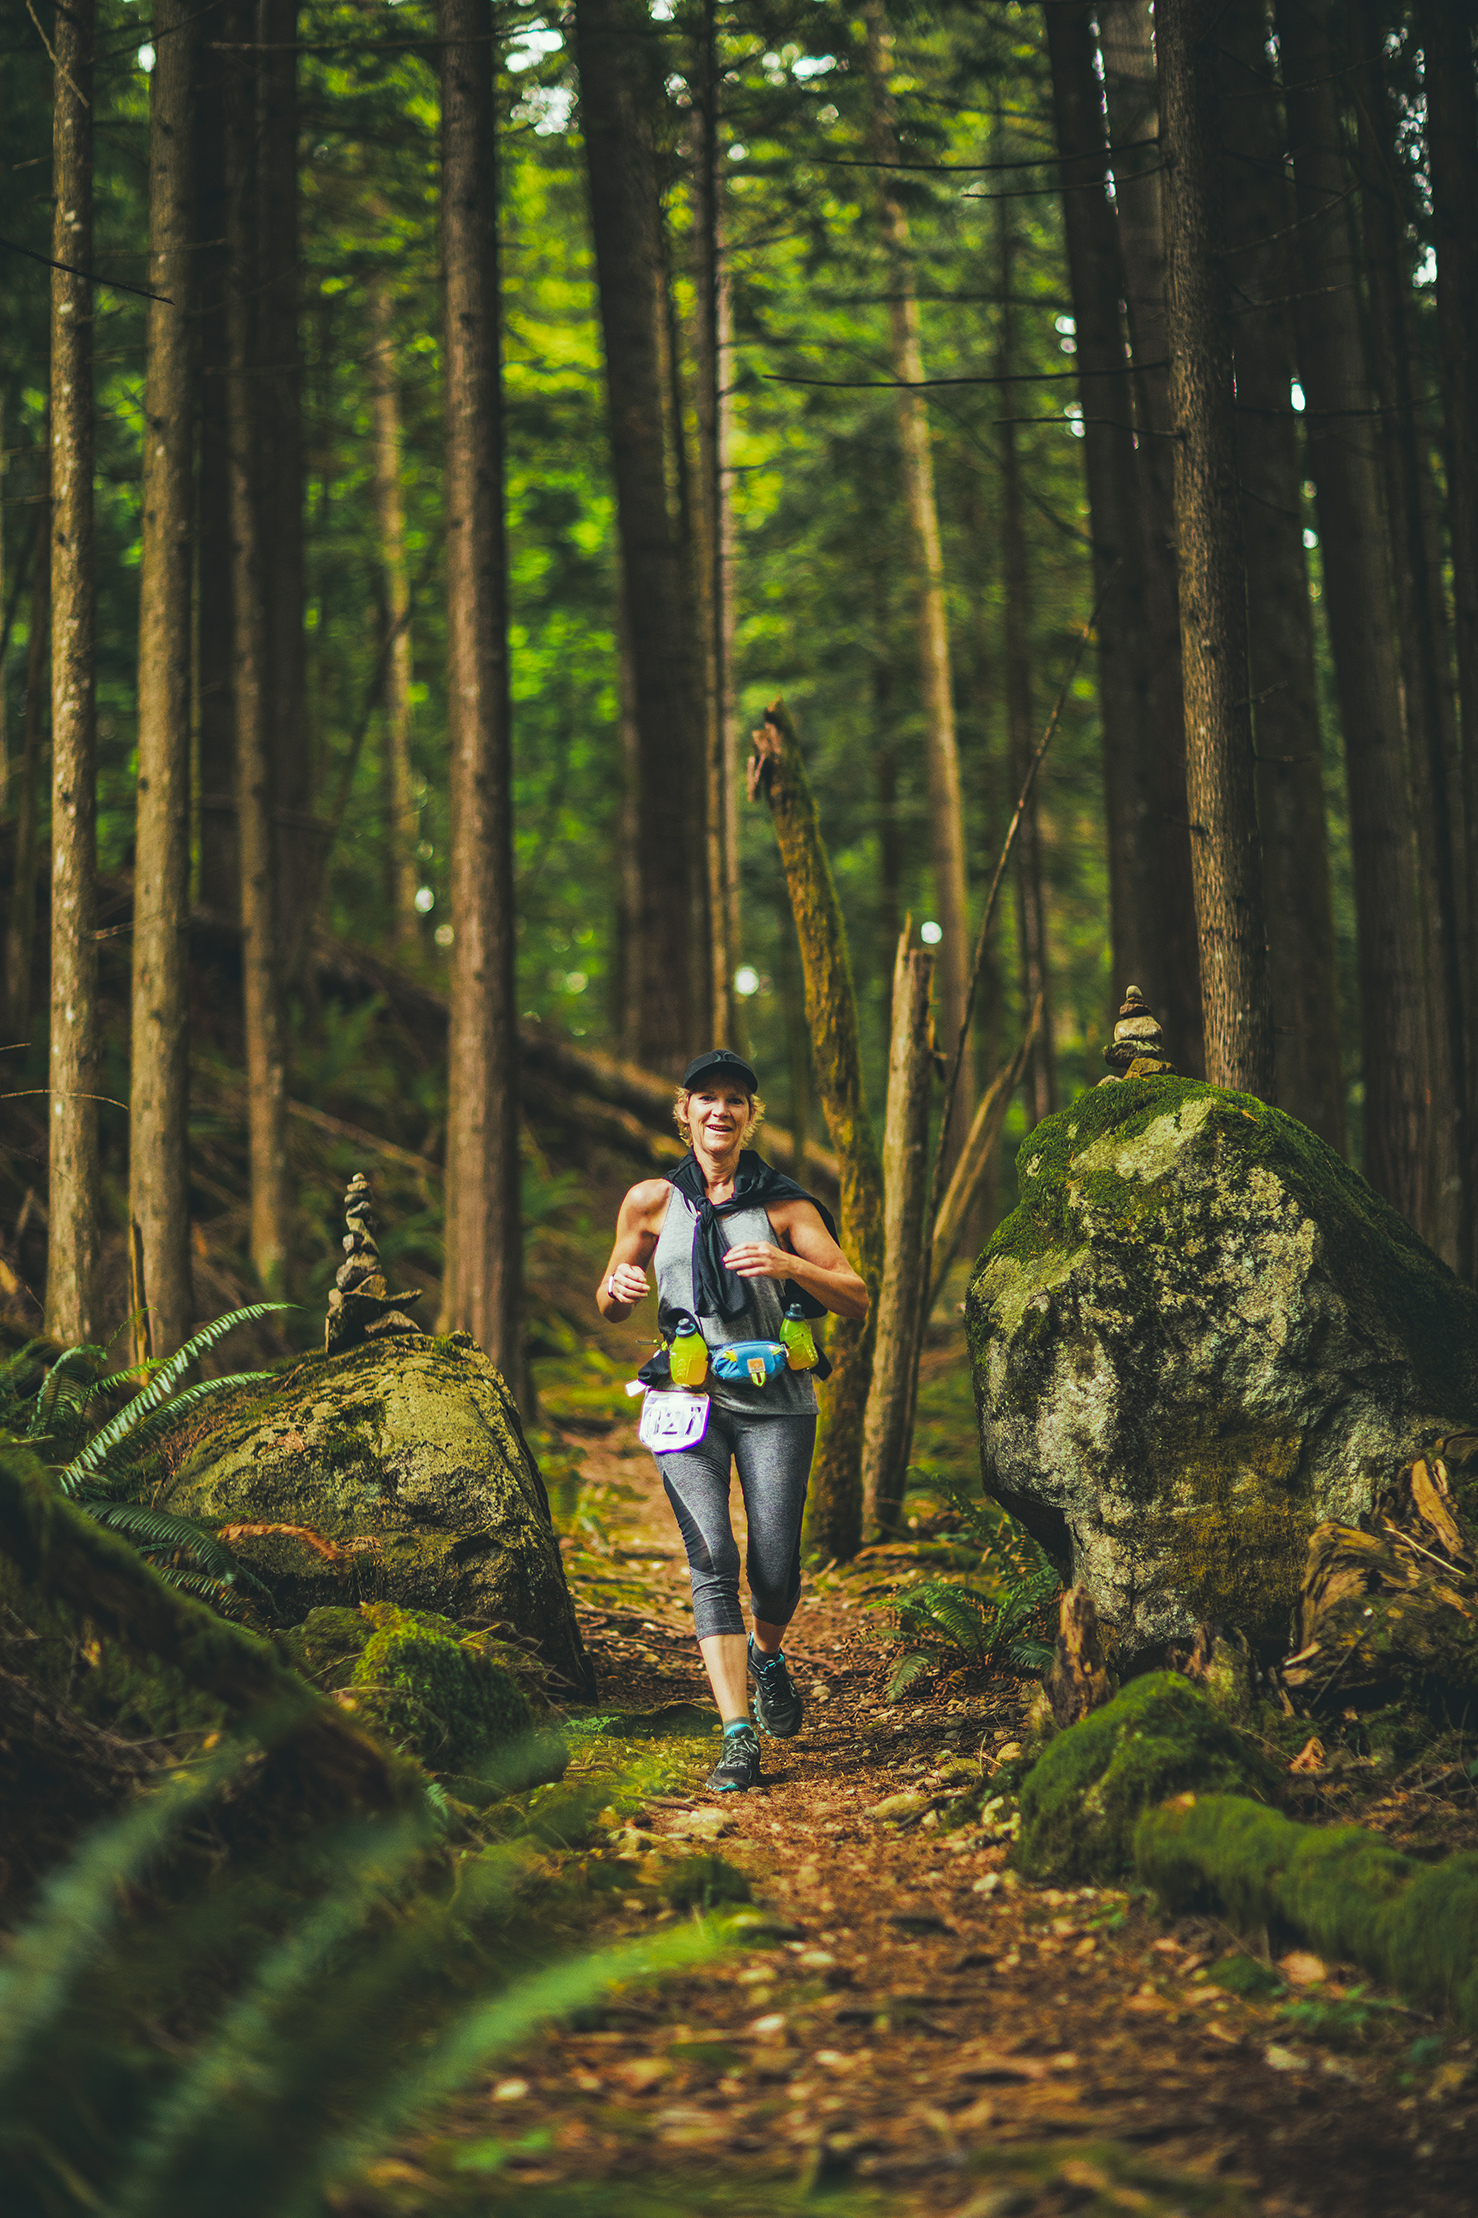 Fraser Valley Trail Races - Bear Mountain - IMG2_2257 by  Brice Ferre Studio - Vancouver Portrait Adventure and Athlete Photographer.jpg